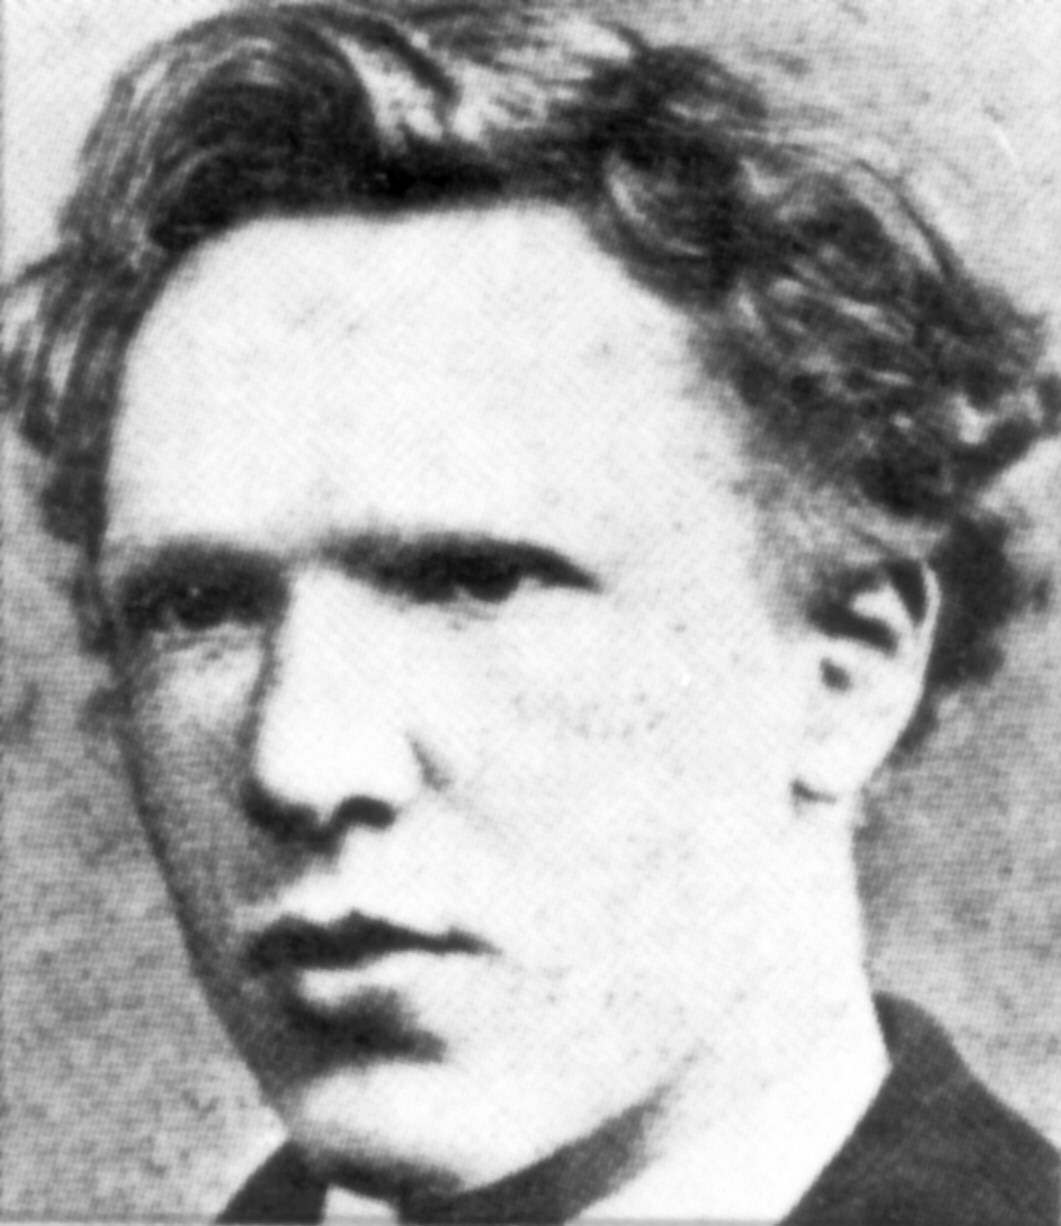 cent c.1873 aged 19. This photograph was taken at the time when he was working at the branch of Goupil & Cie's gallery in The Hague.